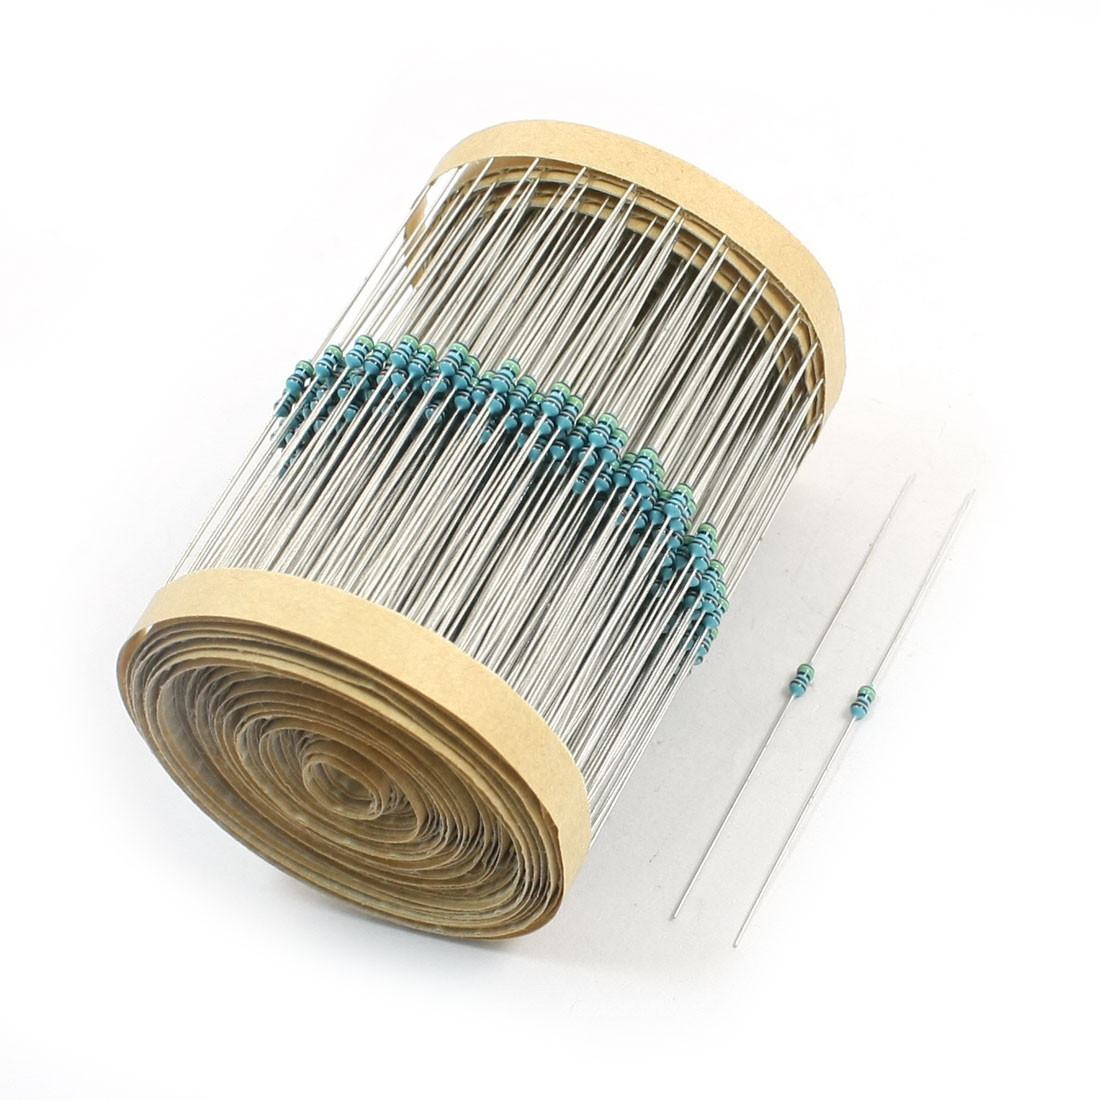 600Pcs 1M Ohm 1/8W 5% Tolerance Axial Lead Through Hole Mounting 4 Color Ring Carbon Film Fixed Resistor